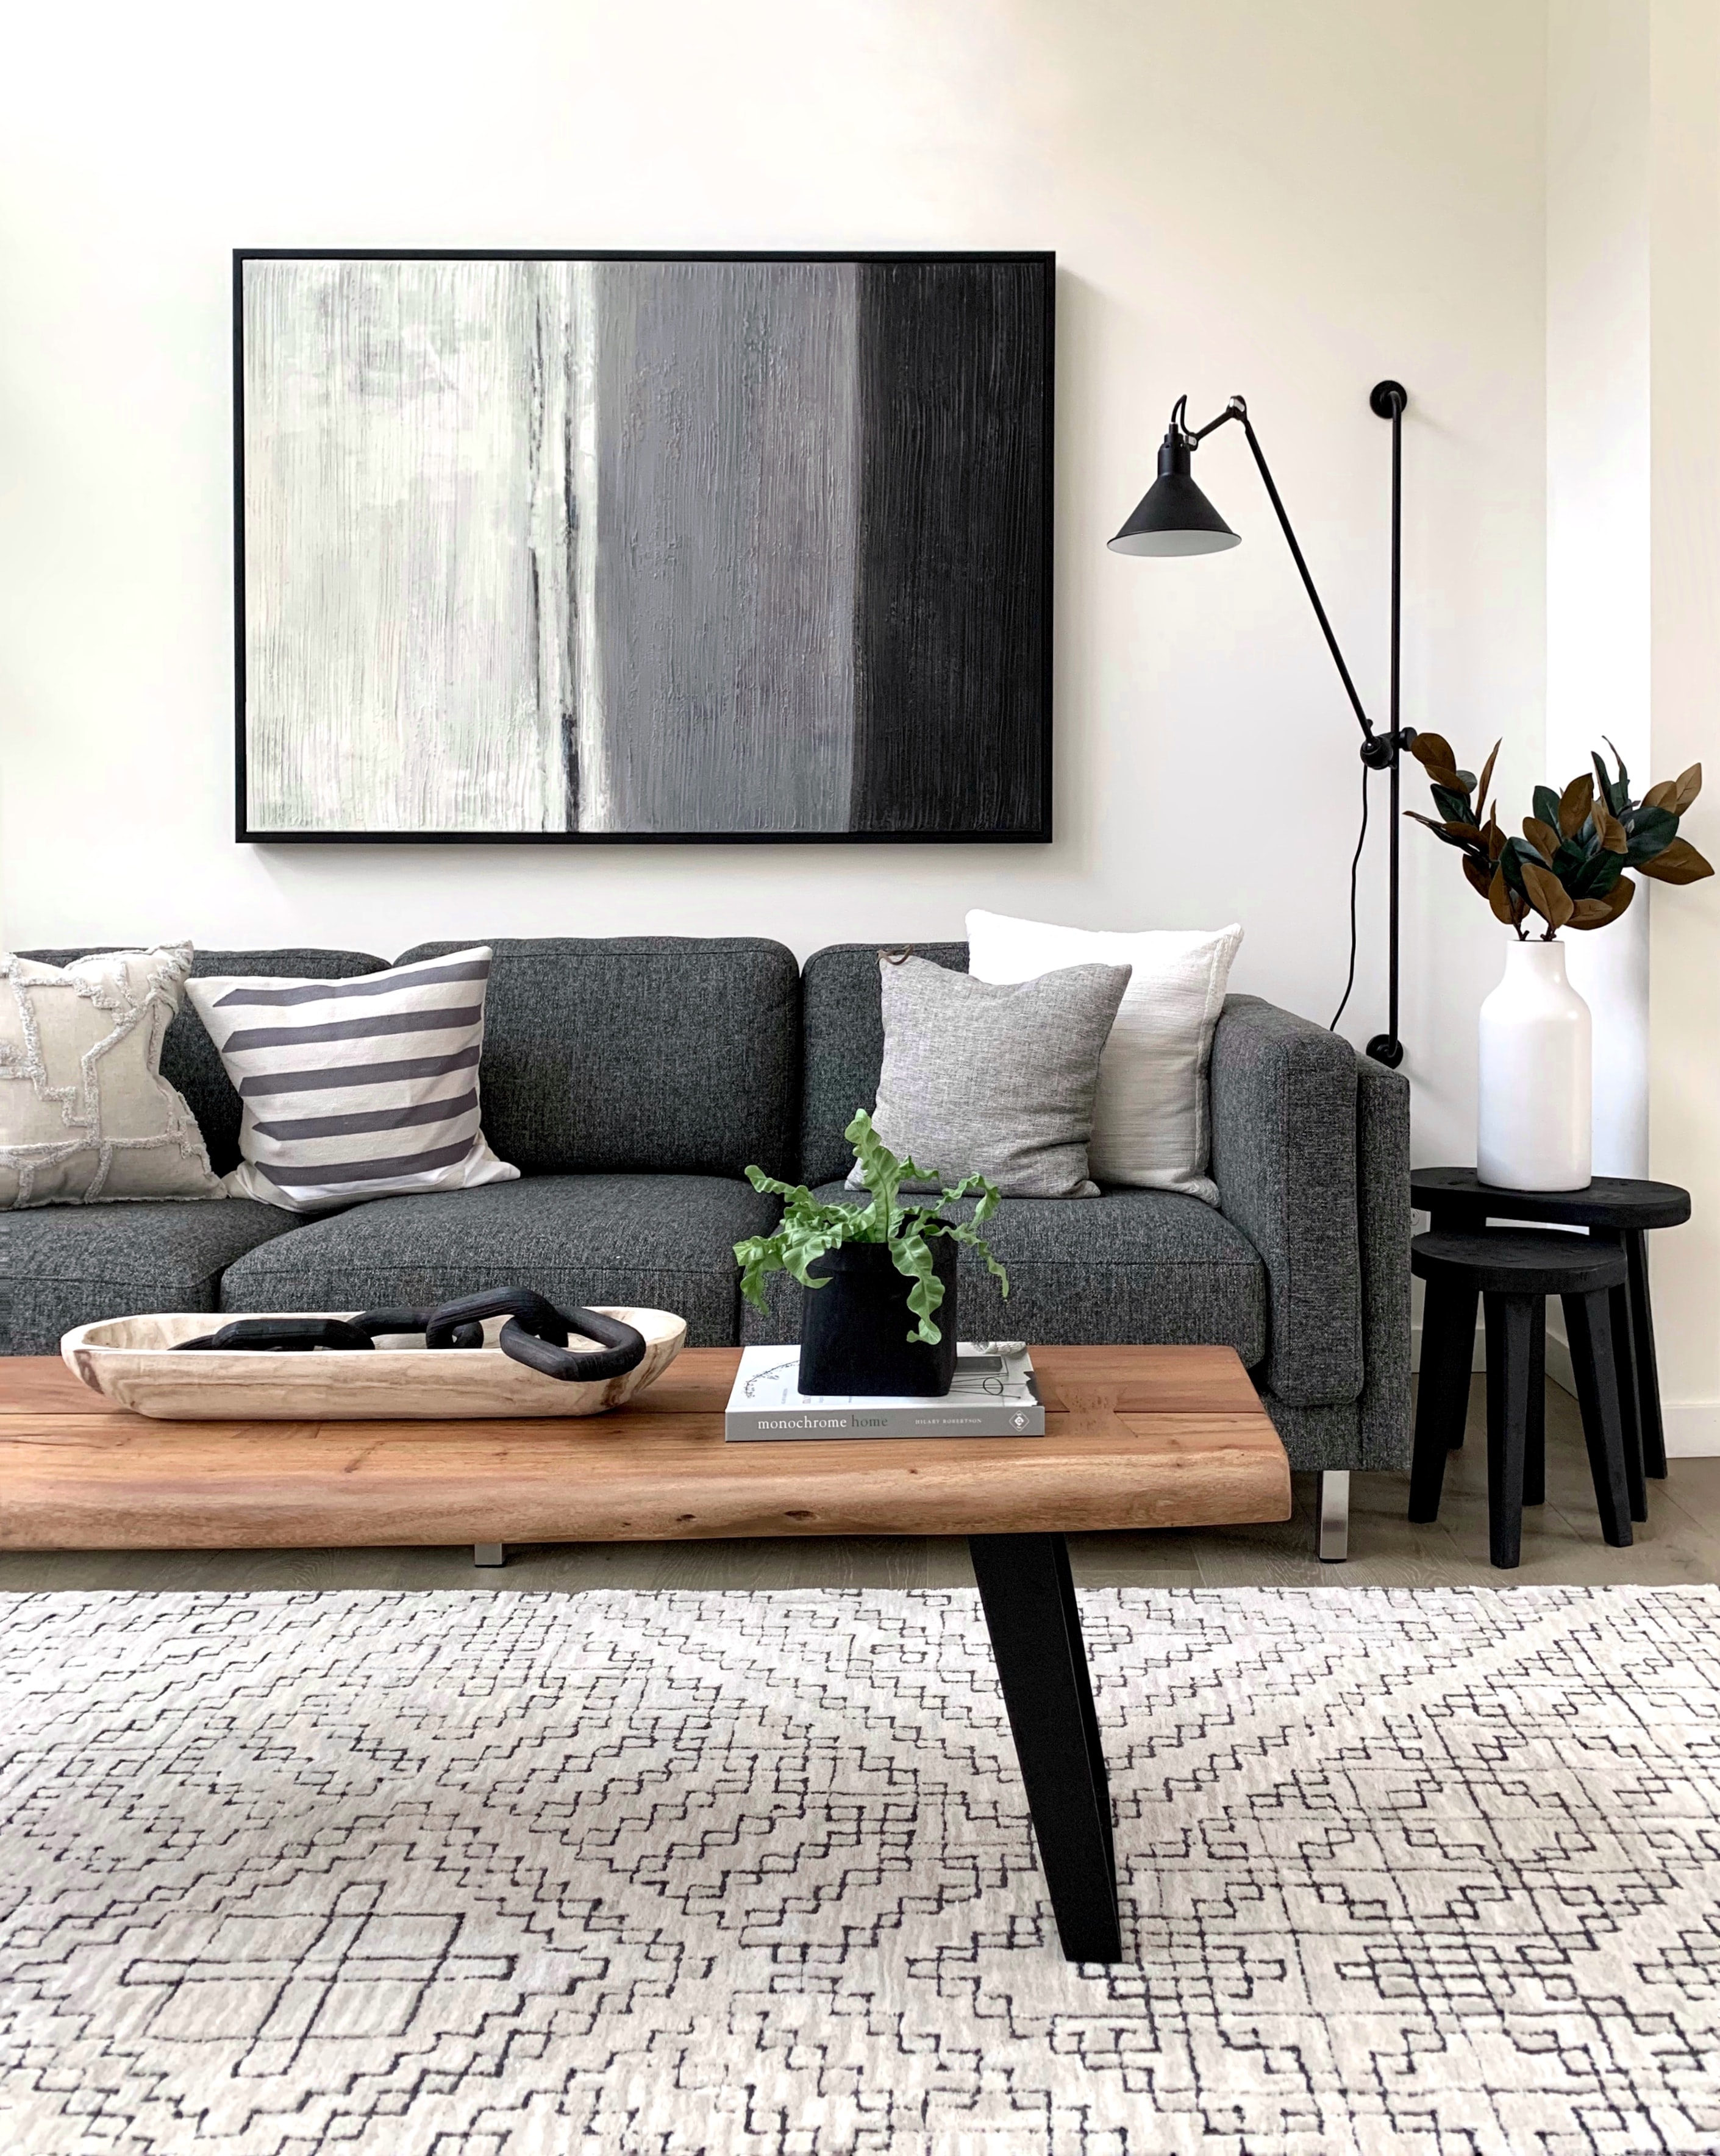 Black And White Throw Pillows On Gray Couch Photo Free Furniture Image On Unsplash